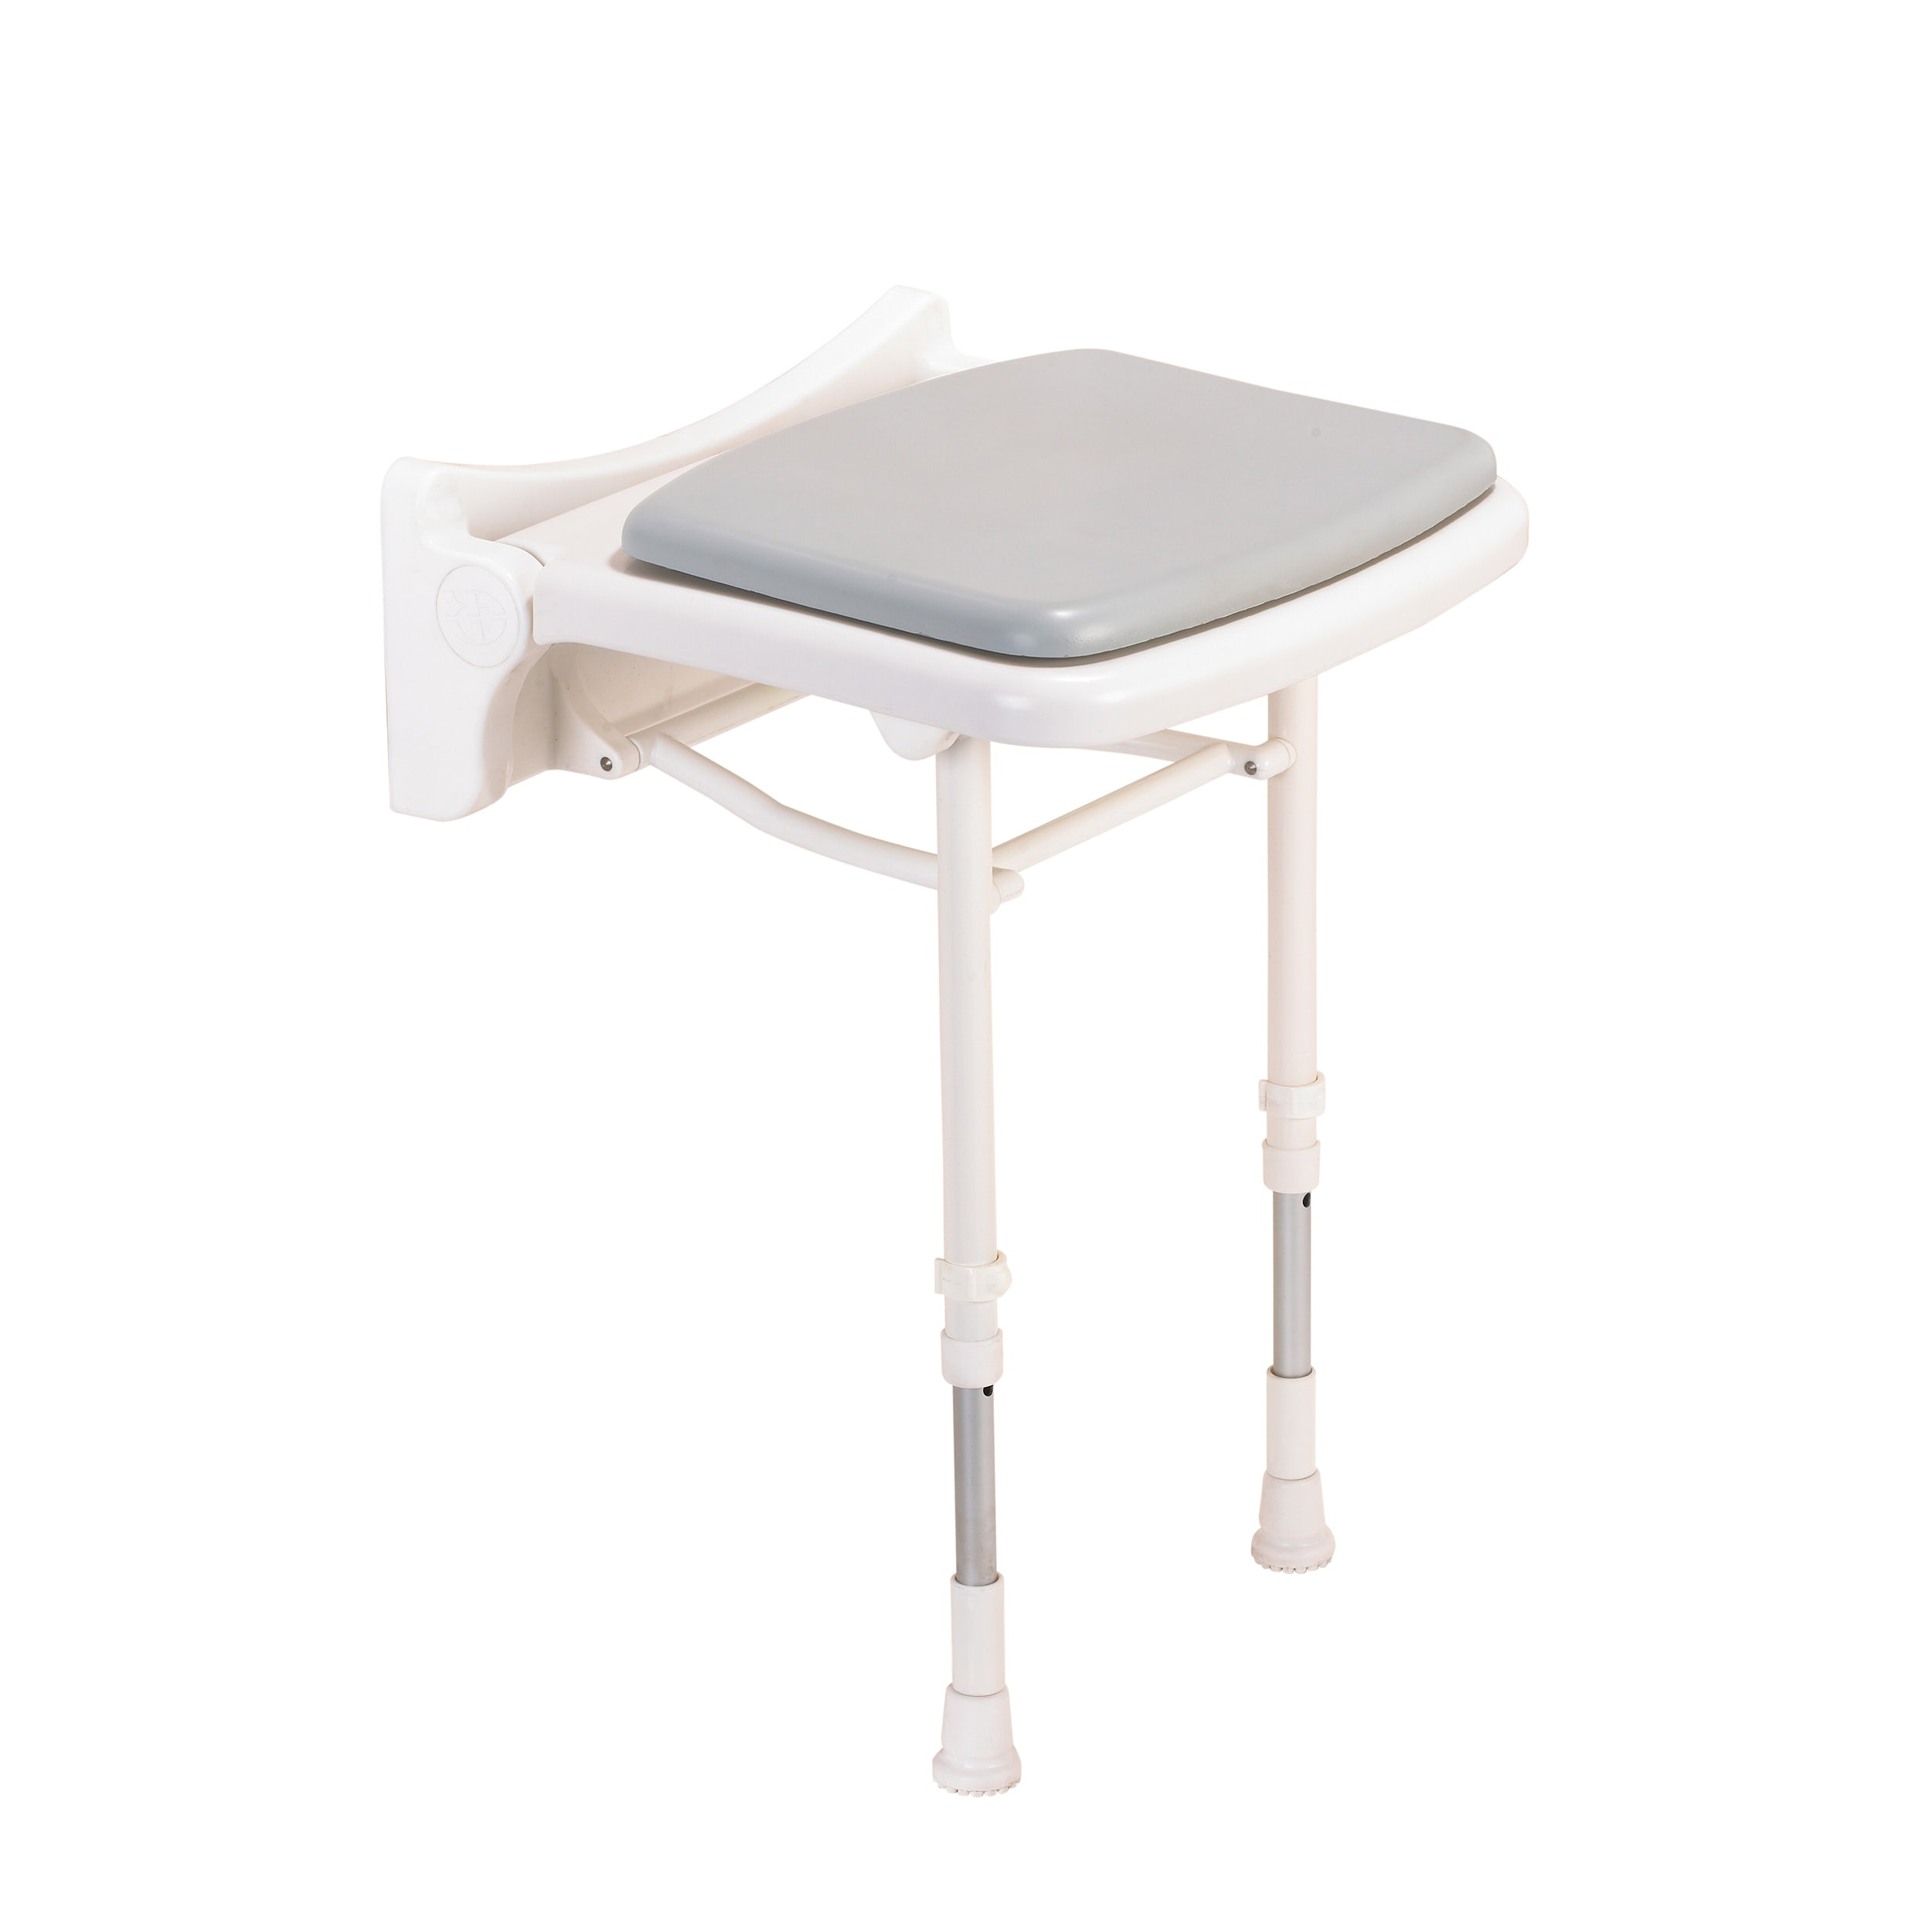 AKW 2000 series compact folding shower seat with grey pad - Sold by Victoria Plum